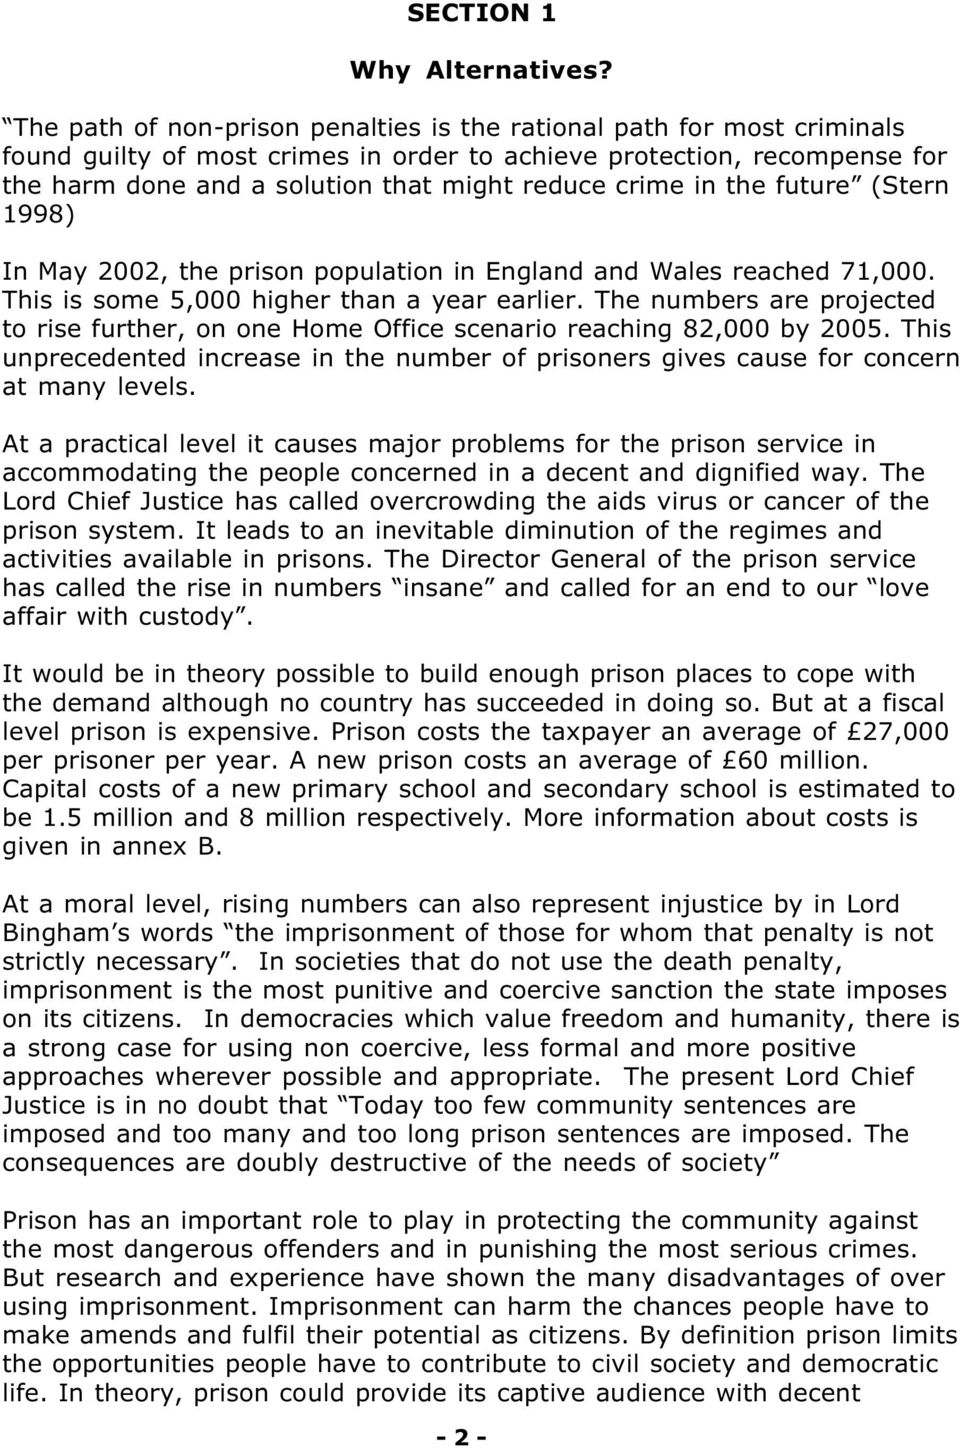 crime in the future (Stern 1998) In May 2002, the prison population in England and Wales reached 71,000. This is some 5,000 higher than a year earlier.